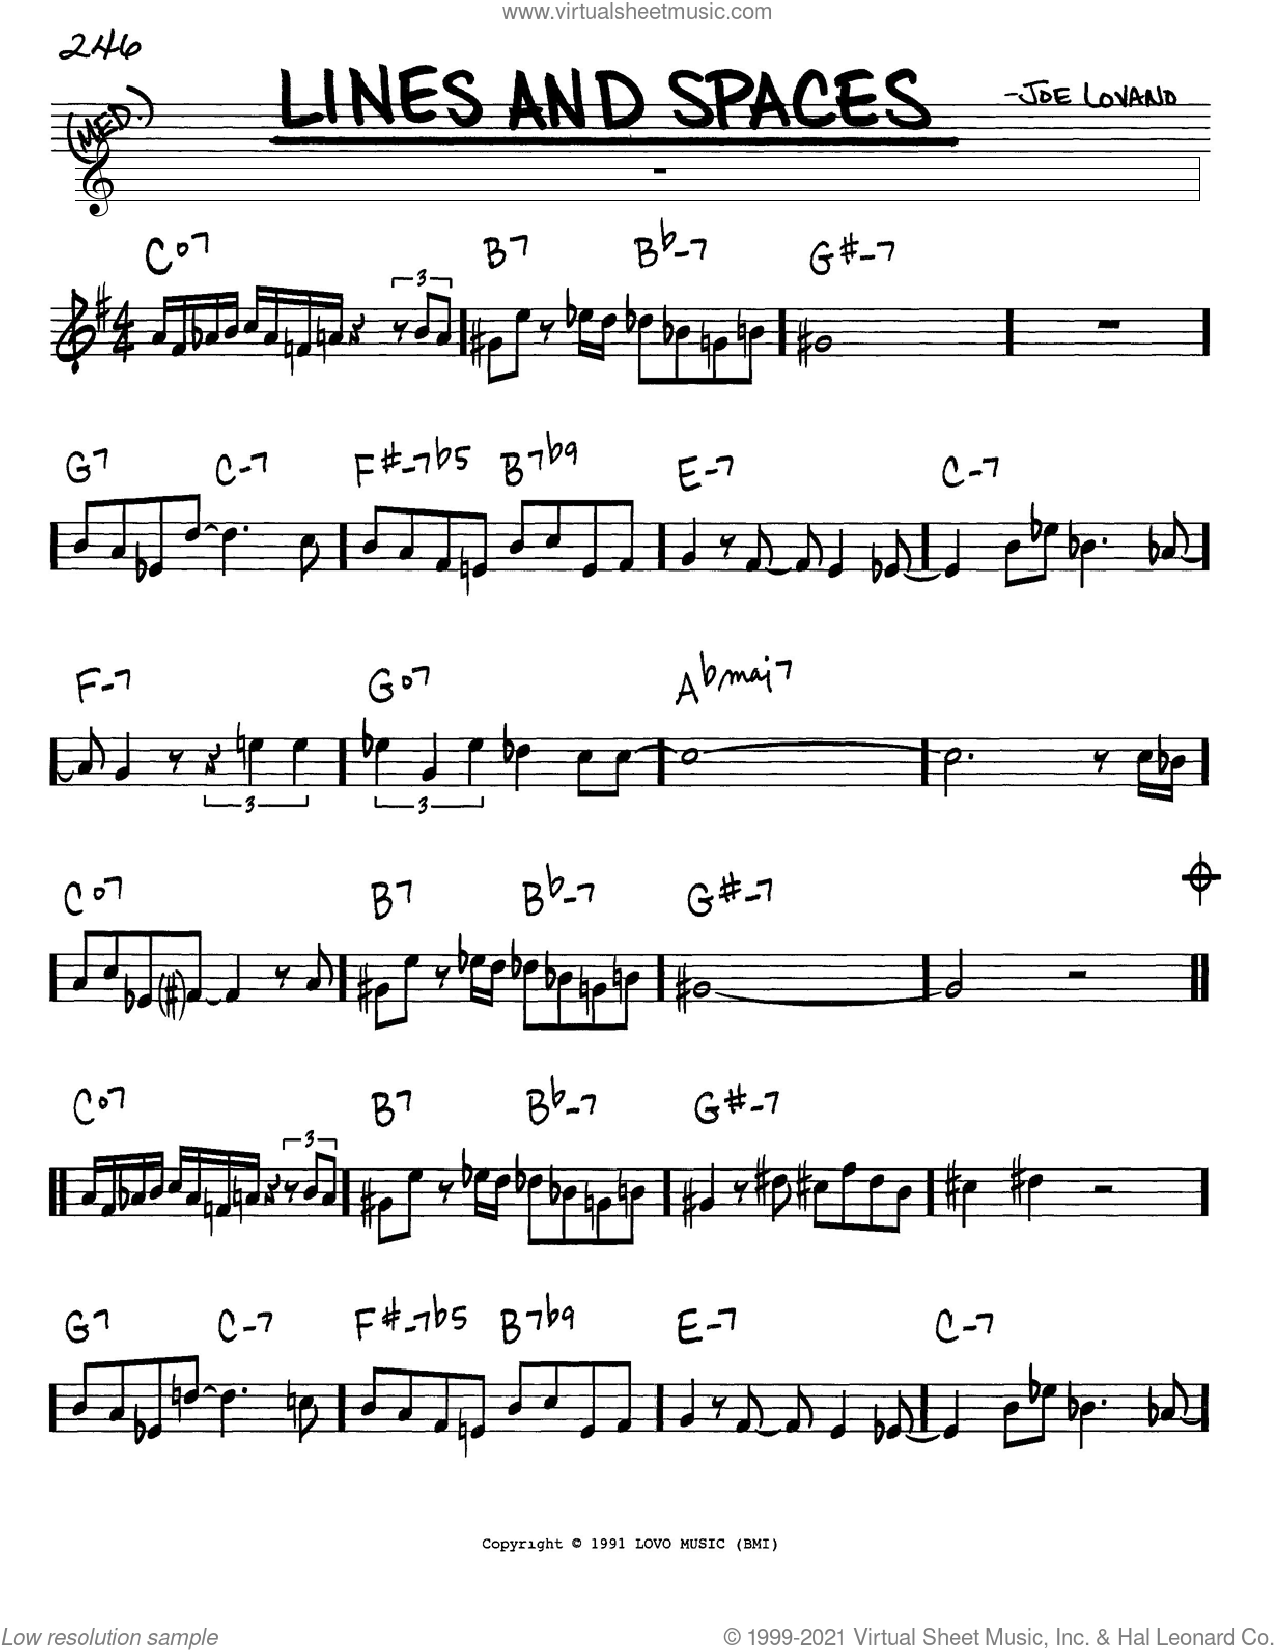 Lines And Spaces sheet music for voice and other instruments (in Eb) by Joe Lovano, intermediate skill level